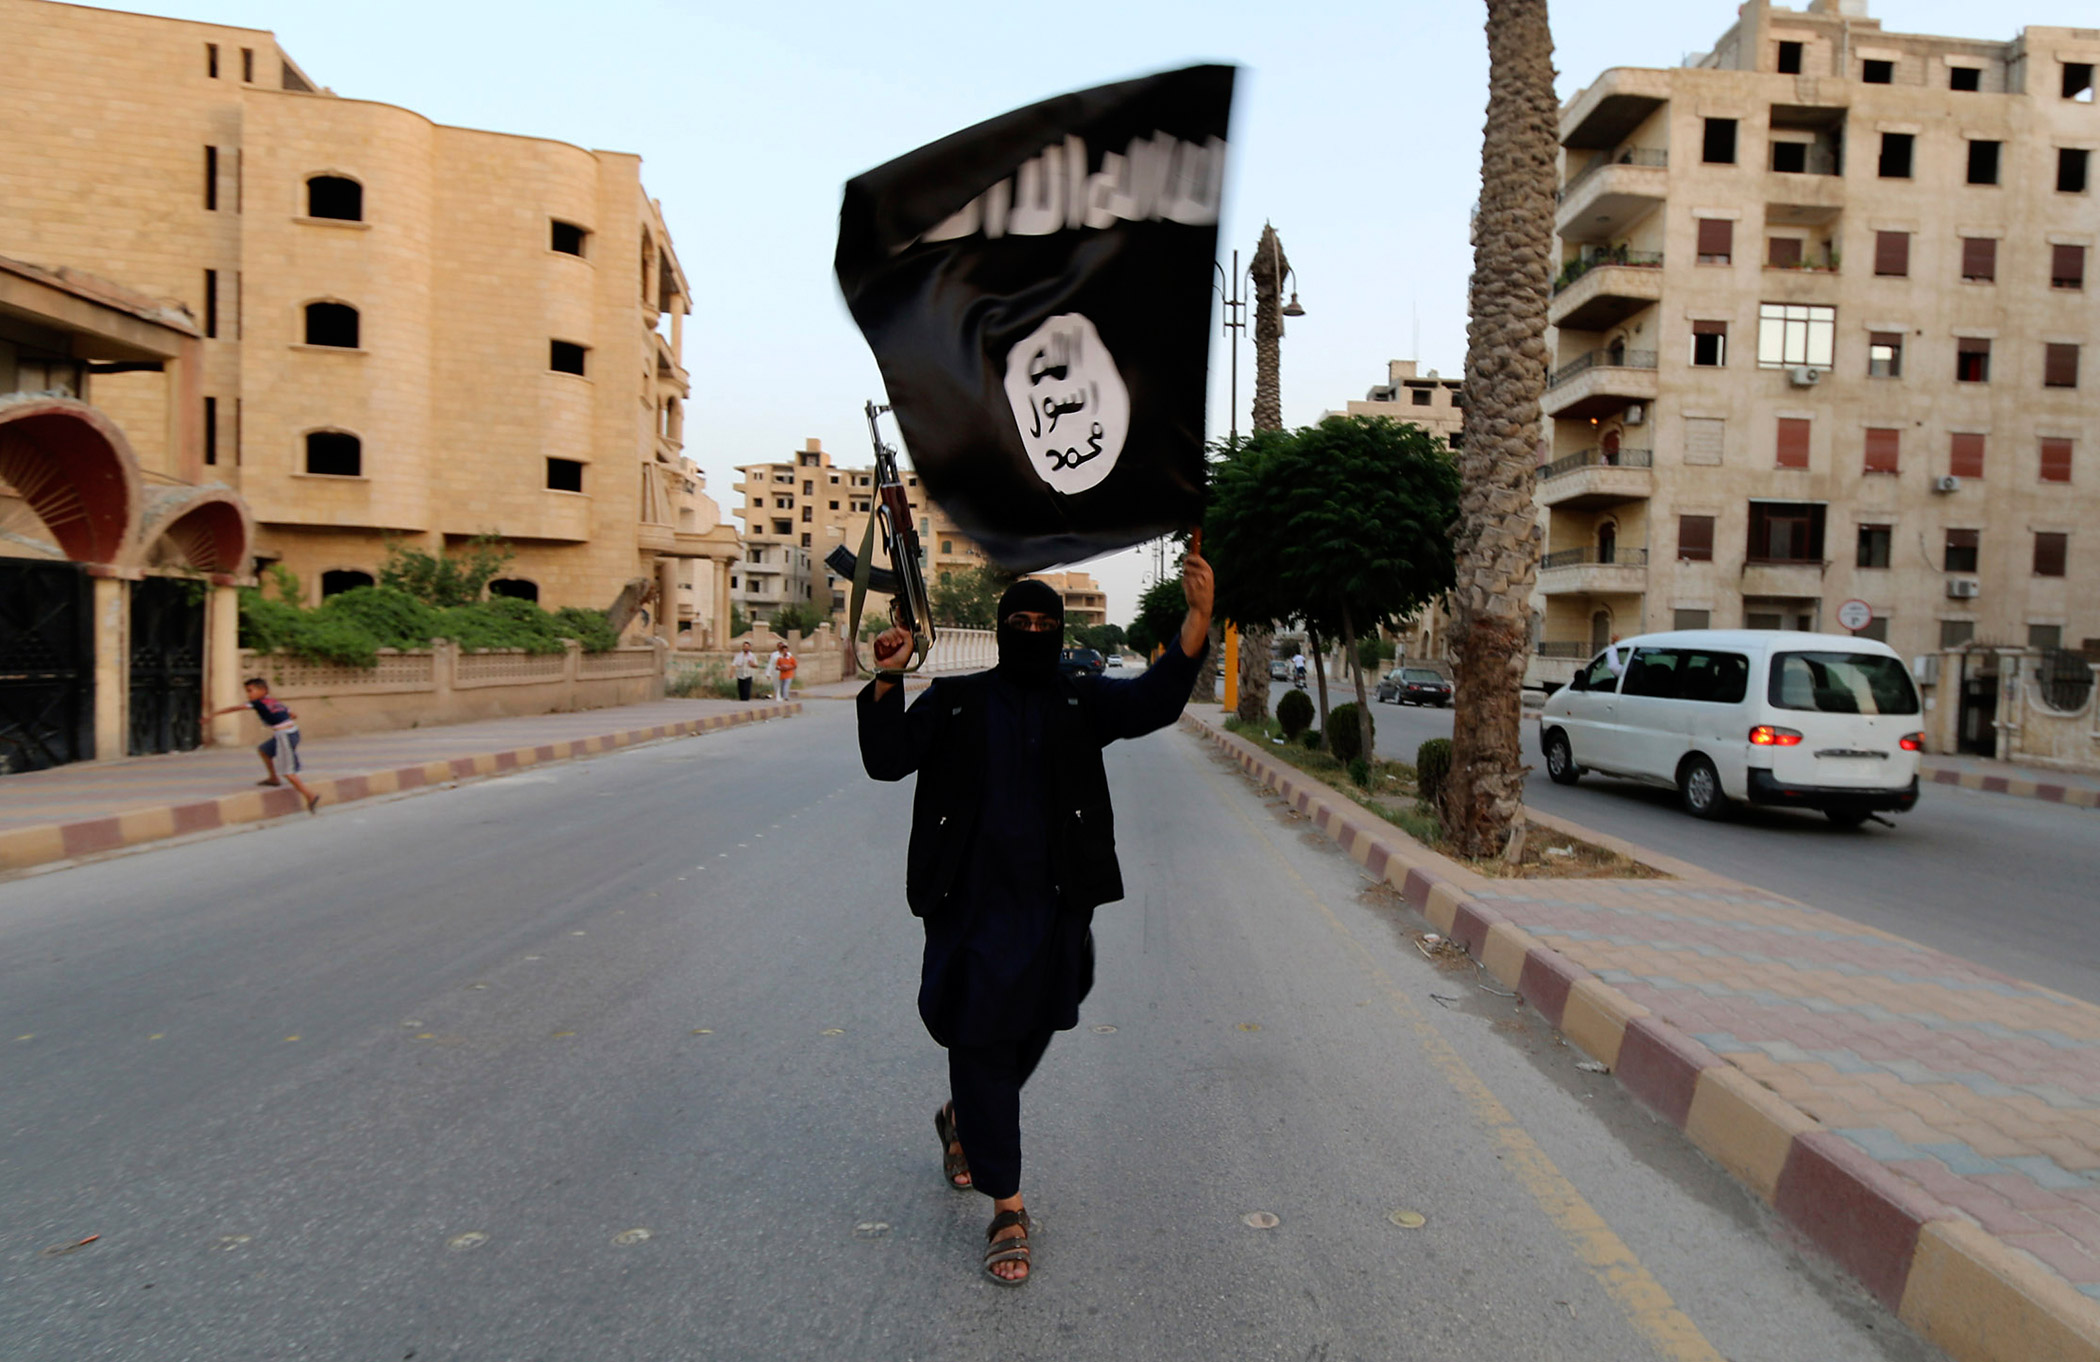 The attackers in Grenoble were said to be carrying a flag like this one being waved  in Raqqa, Syria, on June 29, 2014